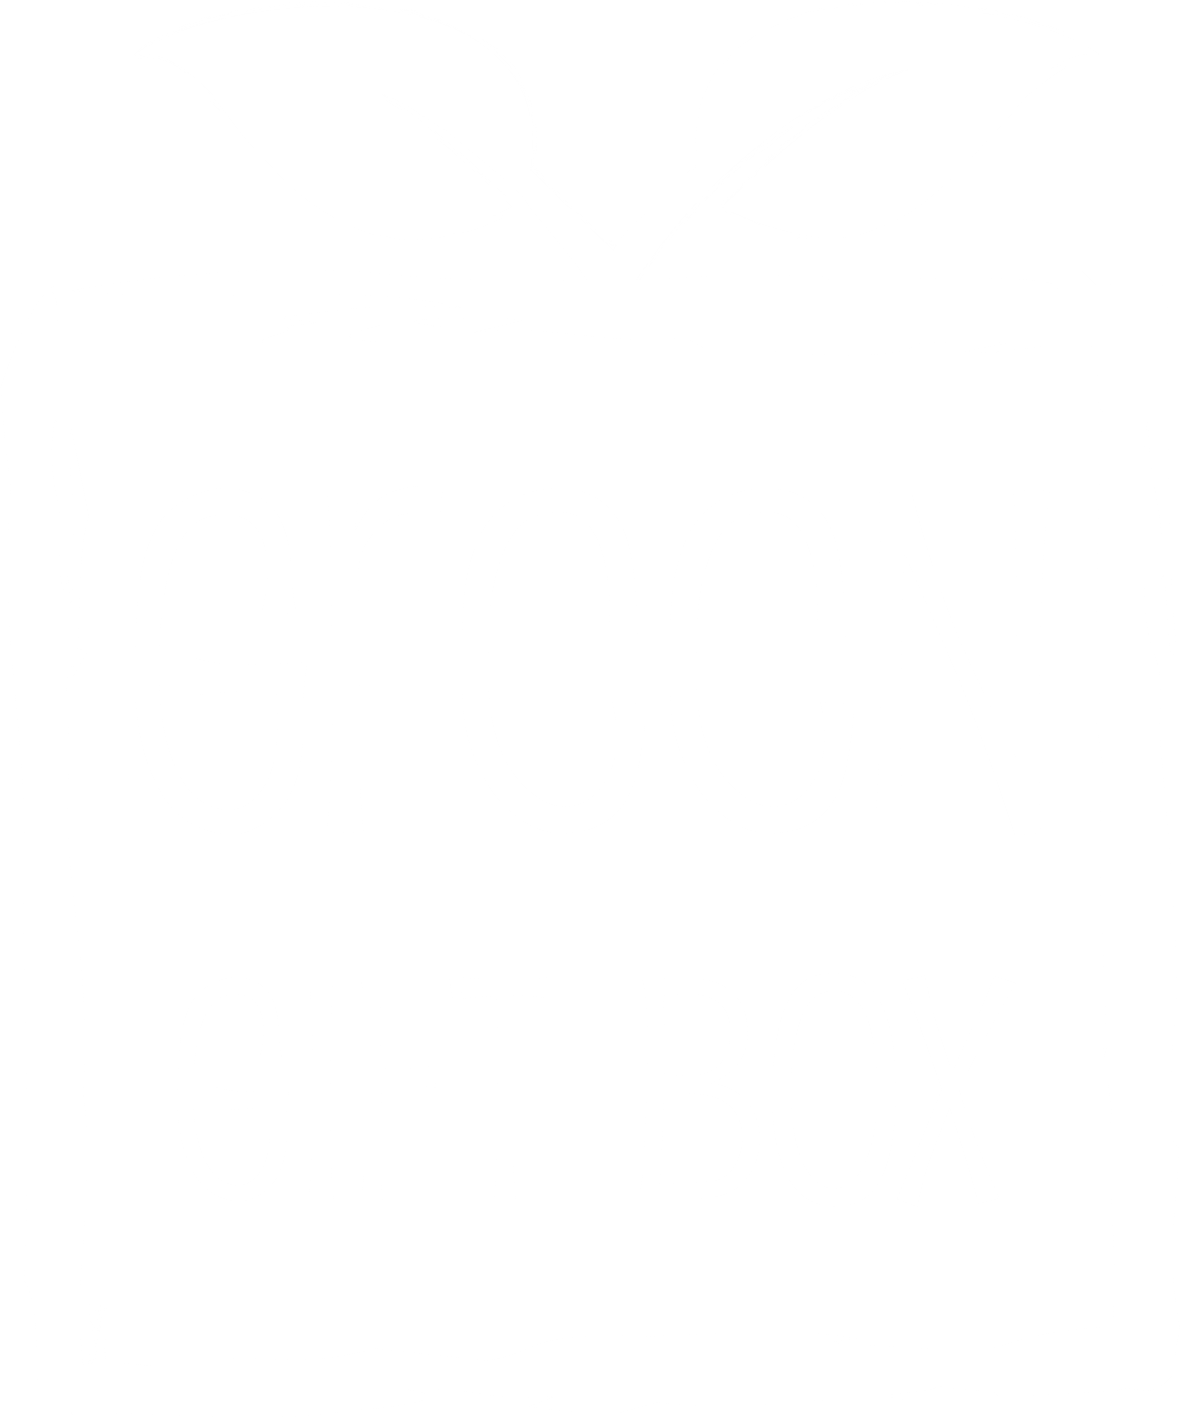 Logo van Green Gift Box